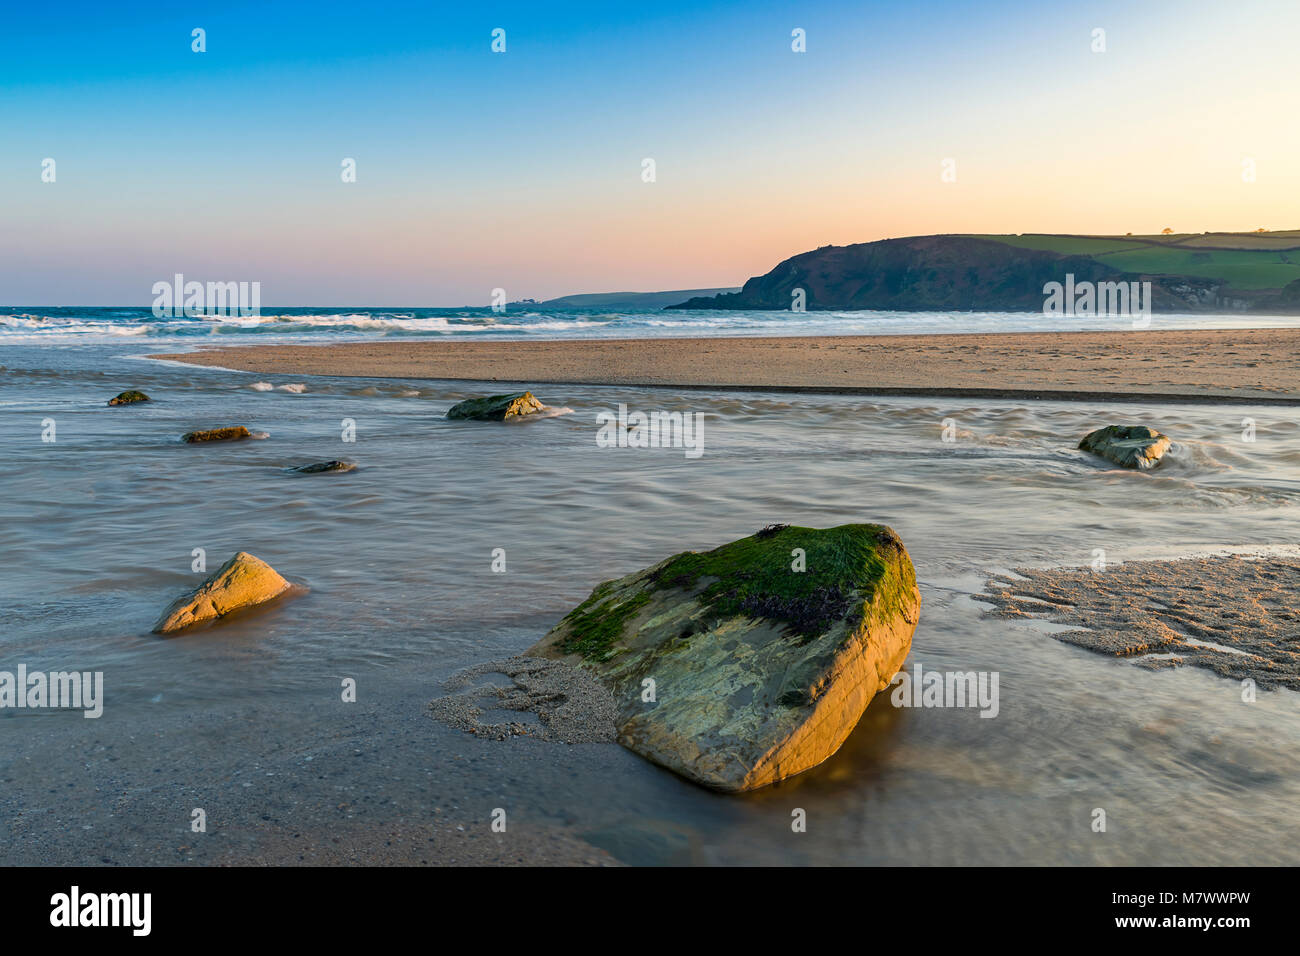 Sun Blushed Rocks Rest Against a Rivers Final Journey at Pentawen Sands in Cornwall - Stock Image